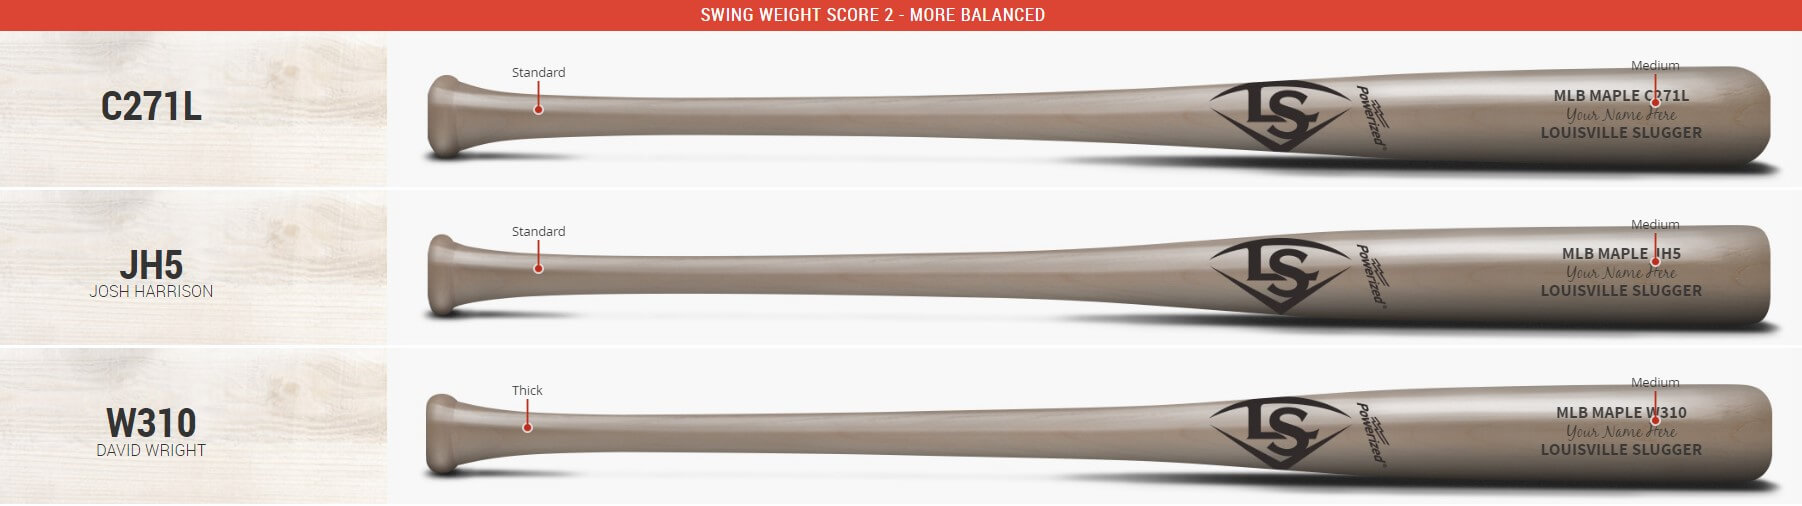 swing weight score louisville custom bats